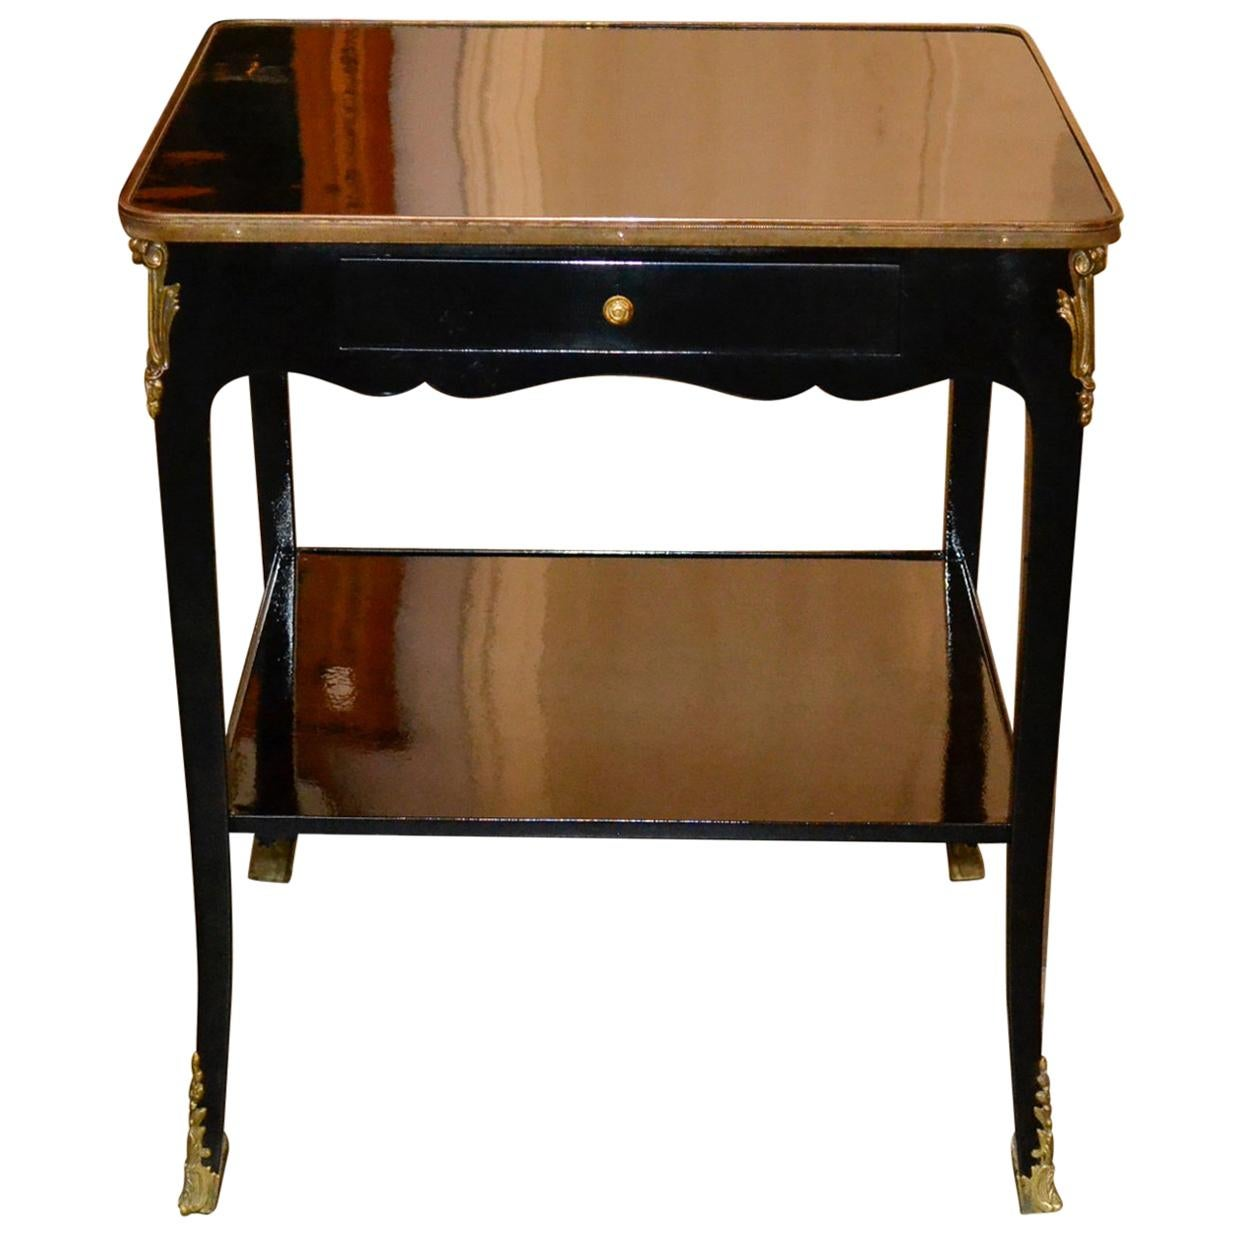 Charmant French Transitional Lacquered Side Table For Sale